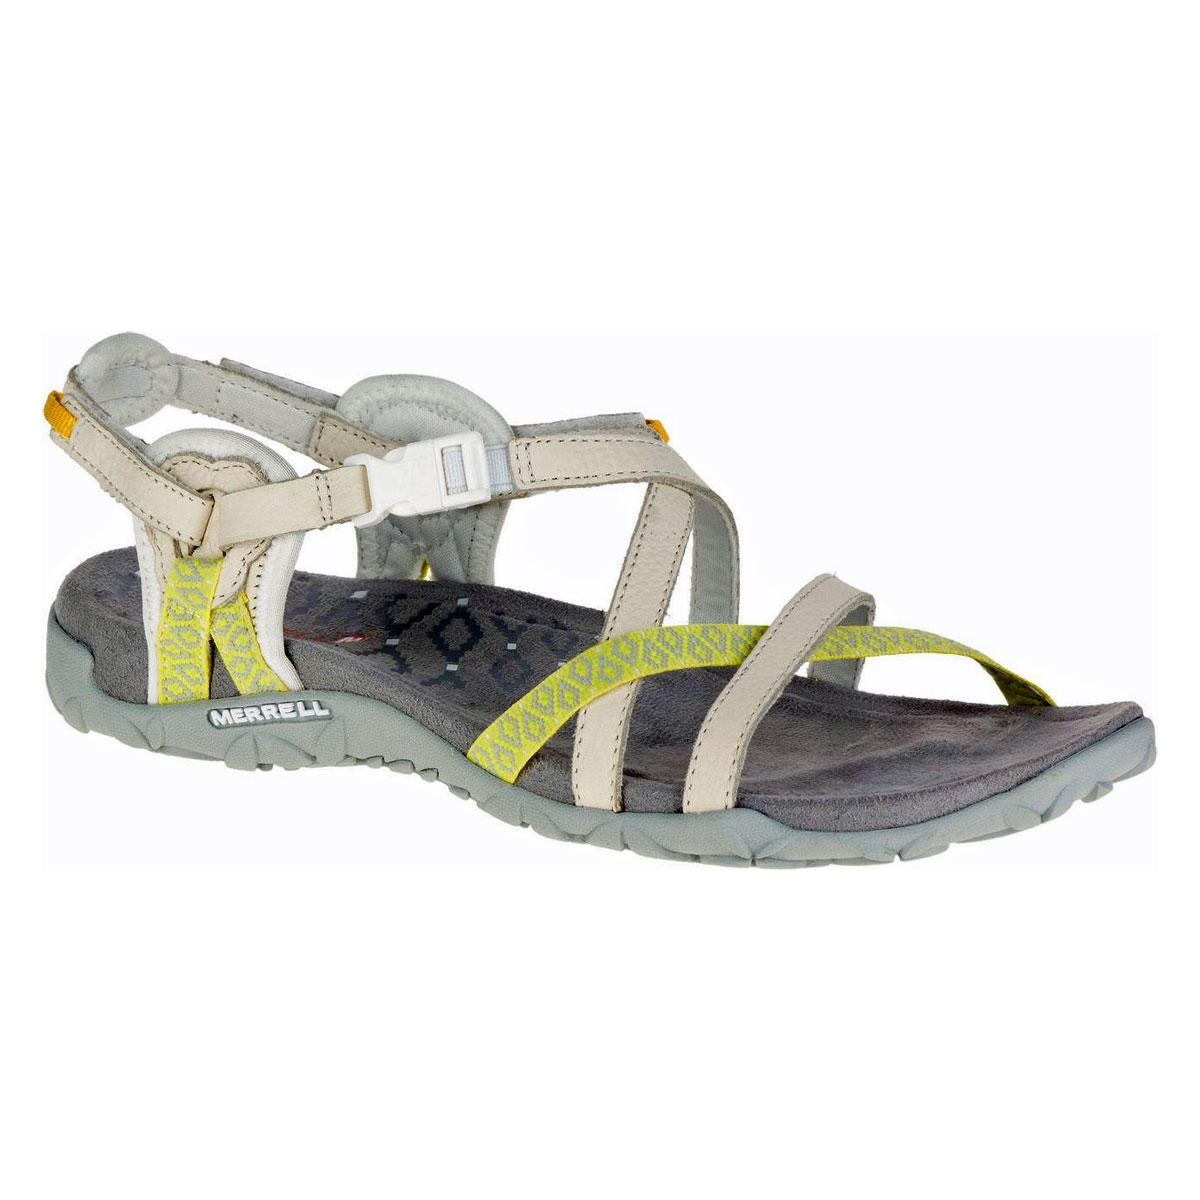 39736957f8ba Image of Merrell Terran Lattice II Sandals (Women s) - White